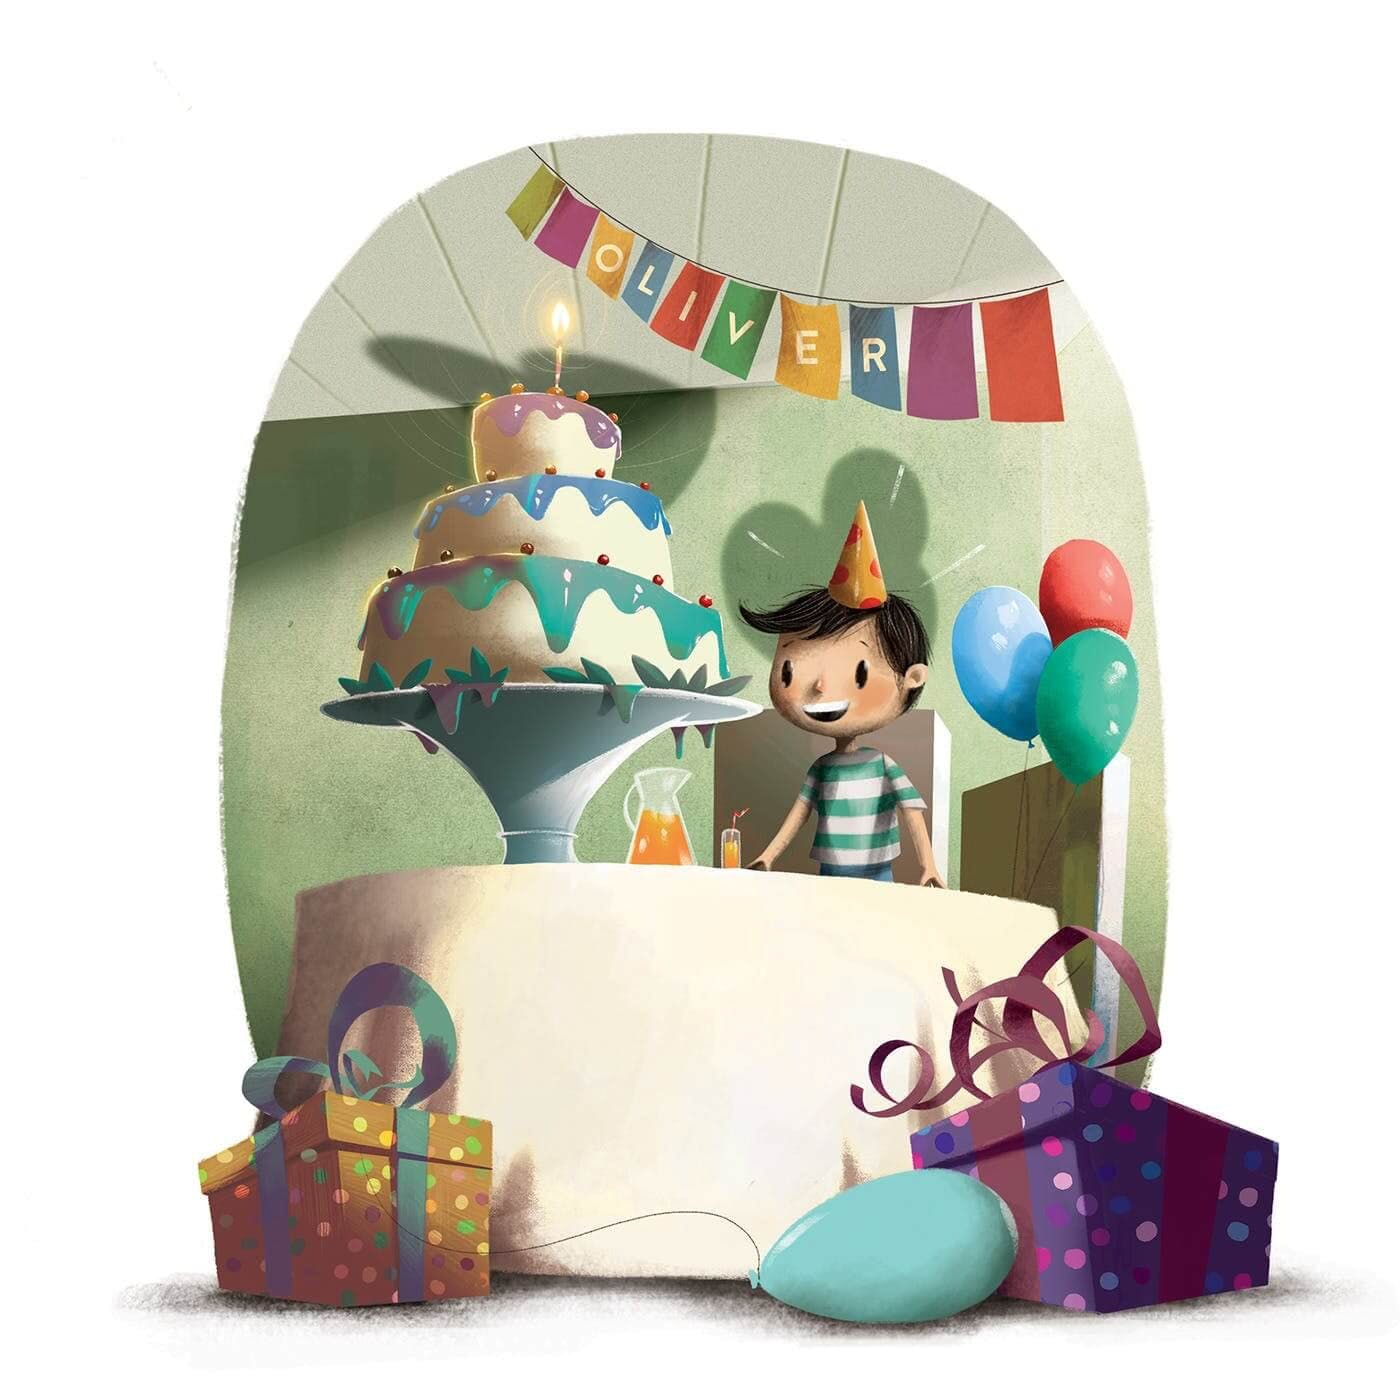 The Birthday Thief Book - Product Description about the character being surrounded by a room full of presents and cake with his name printed on a hanging banner